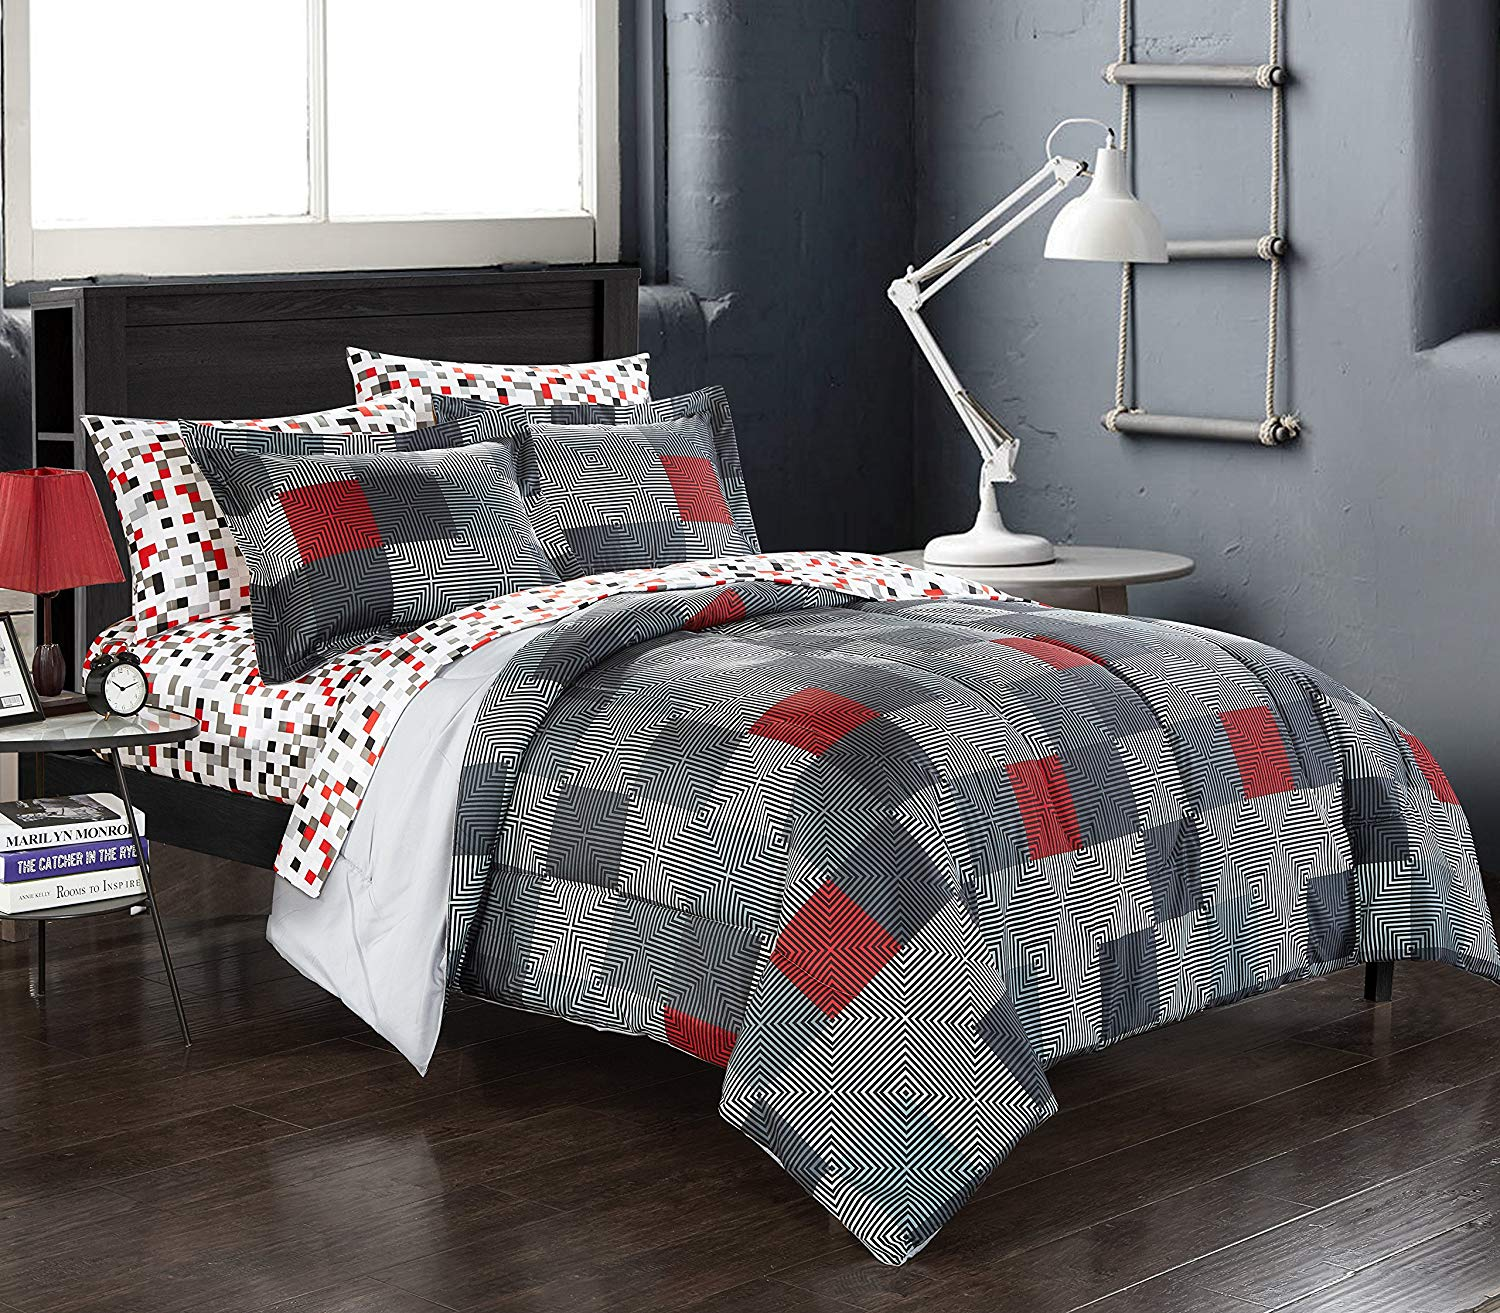 CA 7 Piece Grey Red Geo Blocks Comforter Queen Set, Gray White Black Square Pixel Bedding Geometric Designs Large Checked Pattern, Reversible Polyester